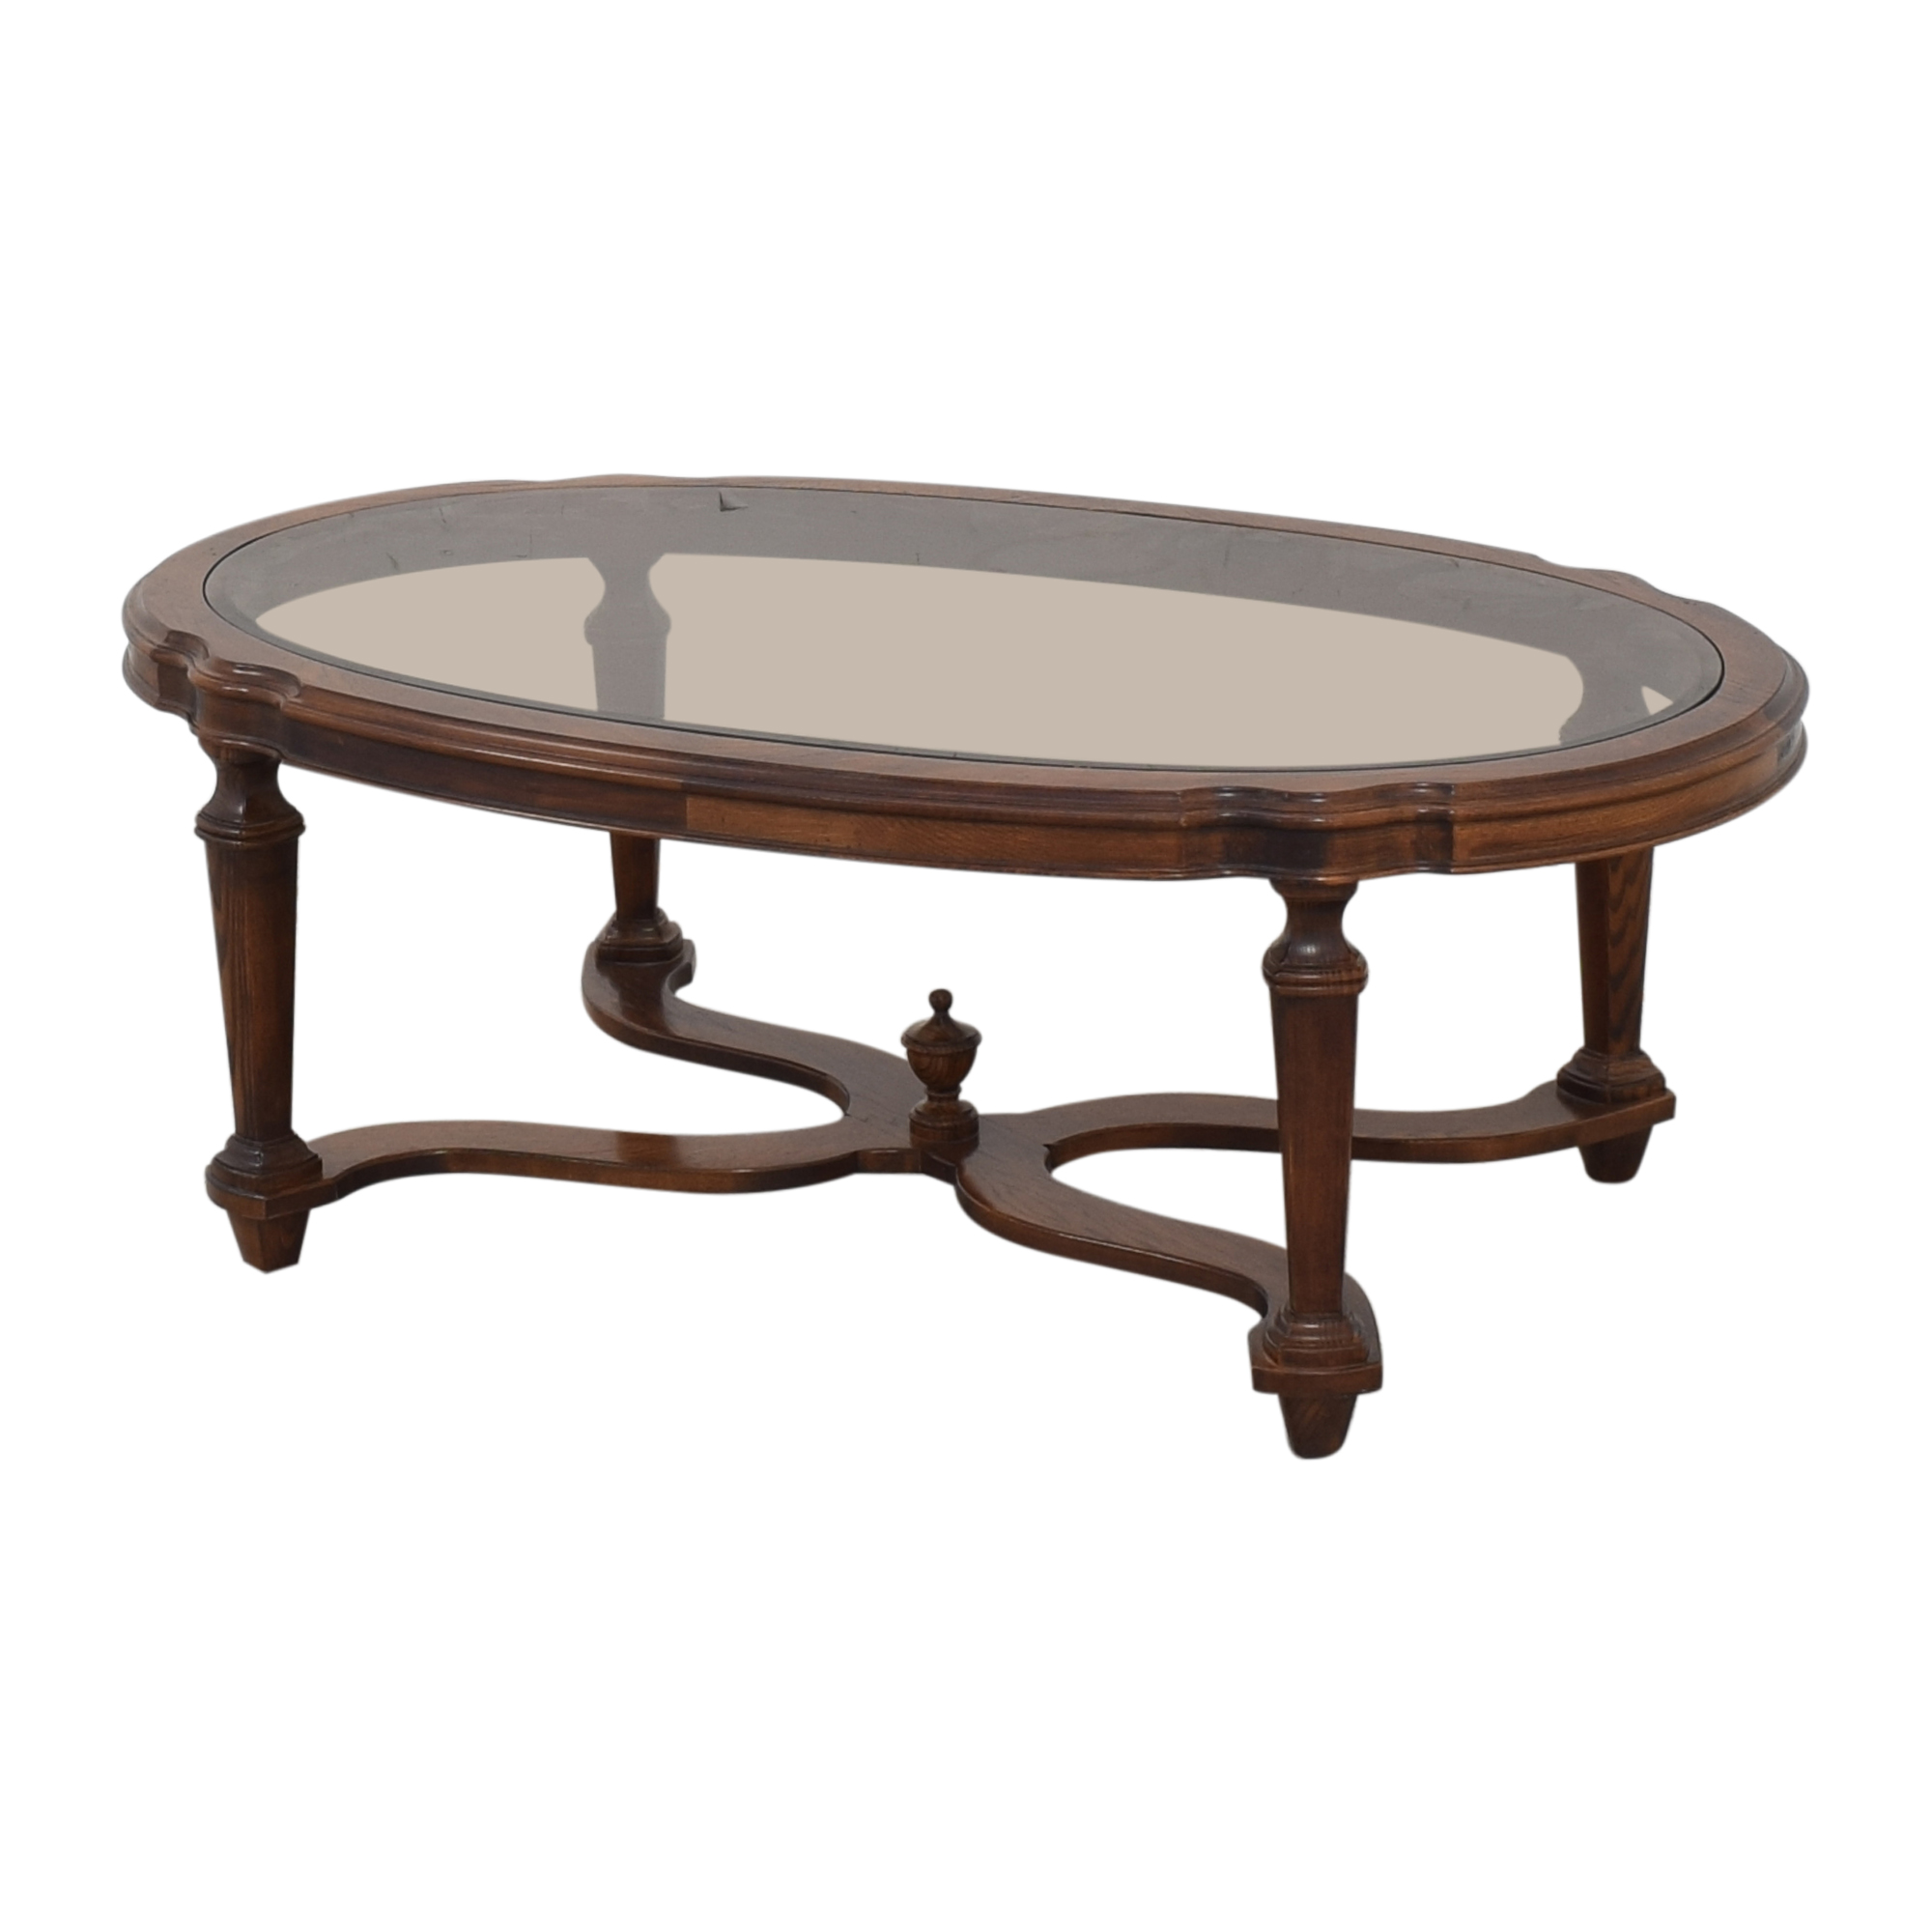 Ethan Allen Ethan Allen Vintage Coffee Table discount